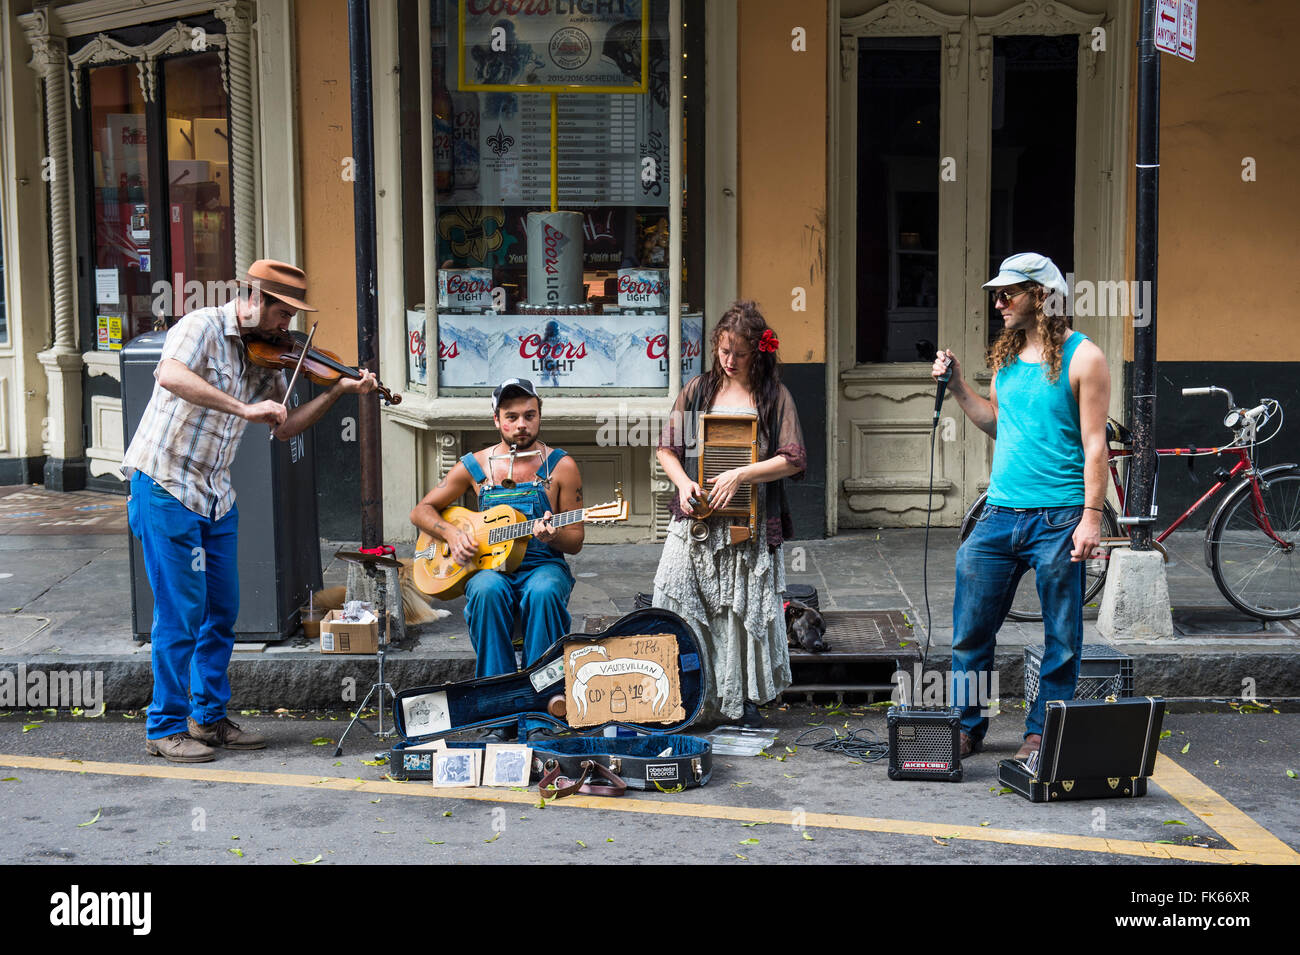 Street musicians in the French Quarter, New Orleans, Louisiana, United States of America, North America - Stock Image